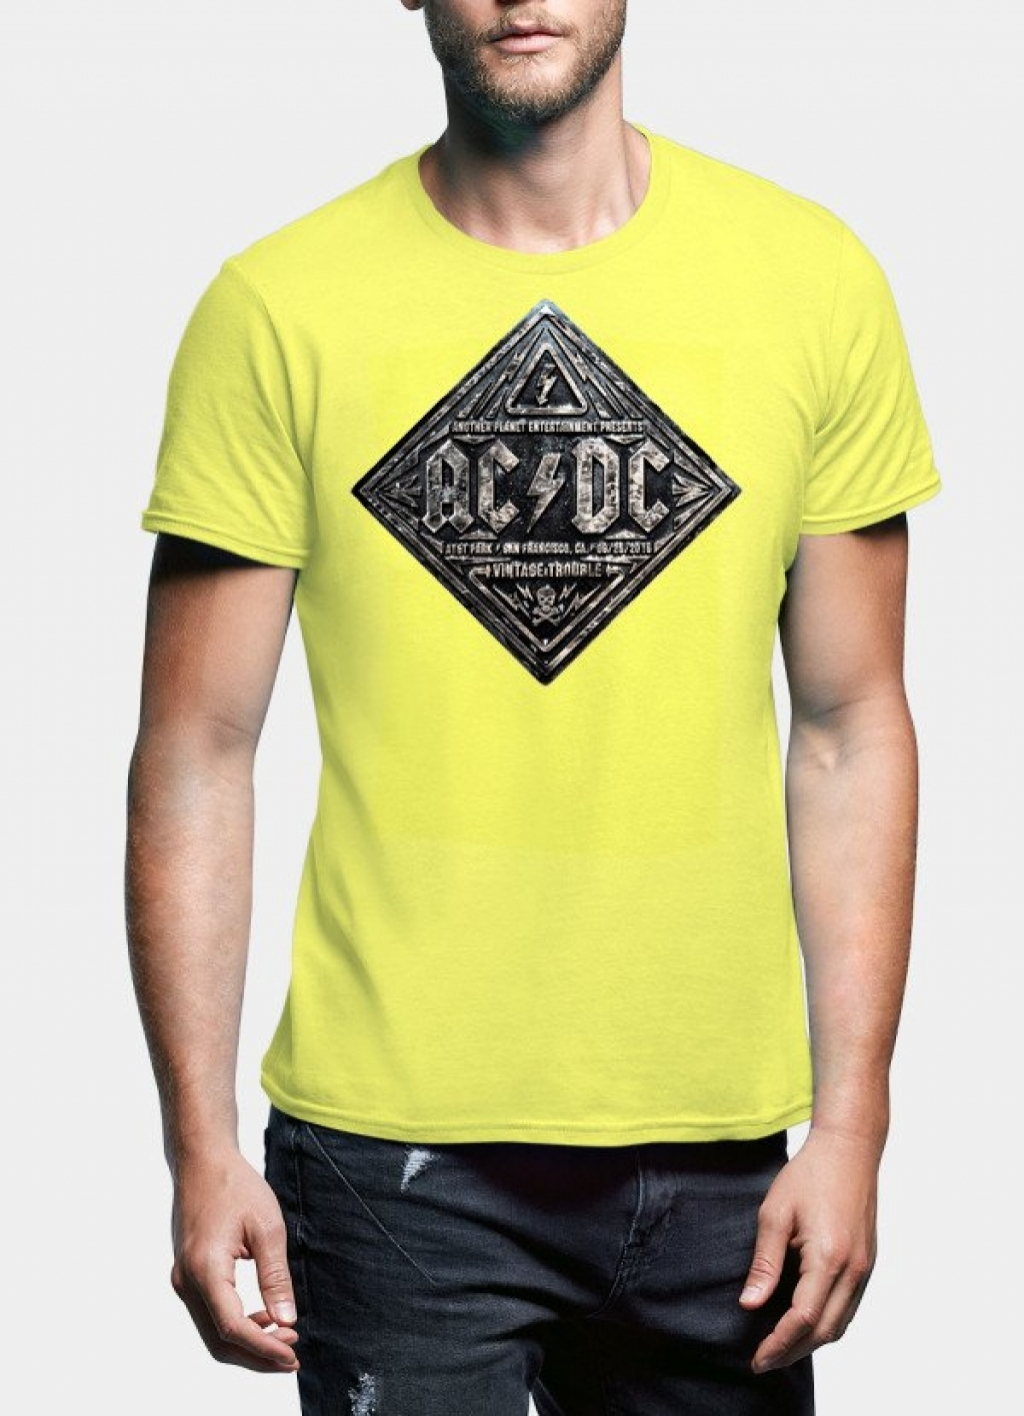 14964172730_ACDC_Back_In_Grey_Half_Sleeve_Men_T-Shirt-yellow.jpg